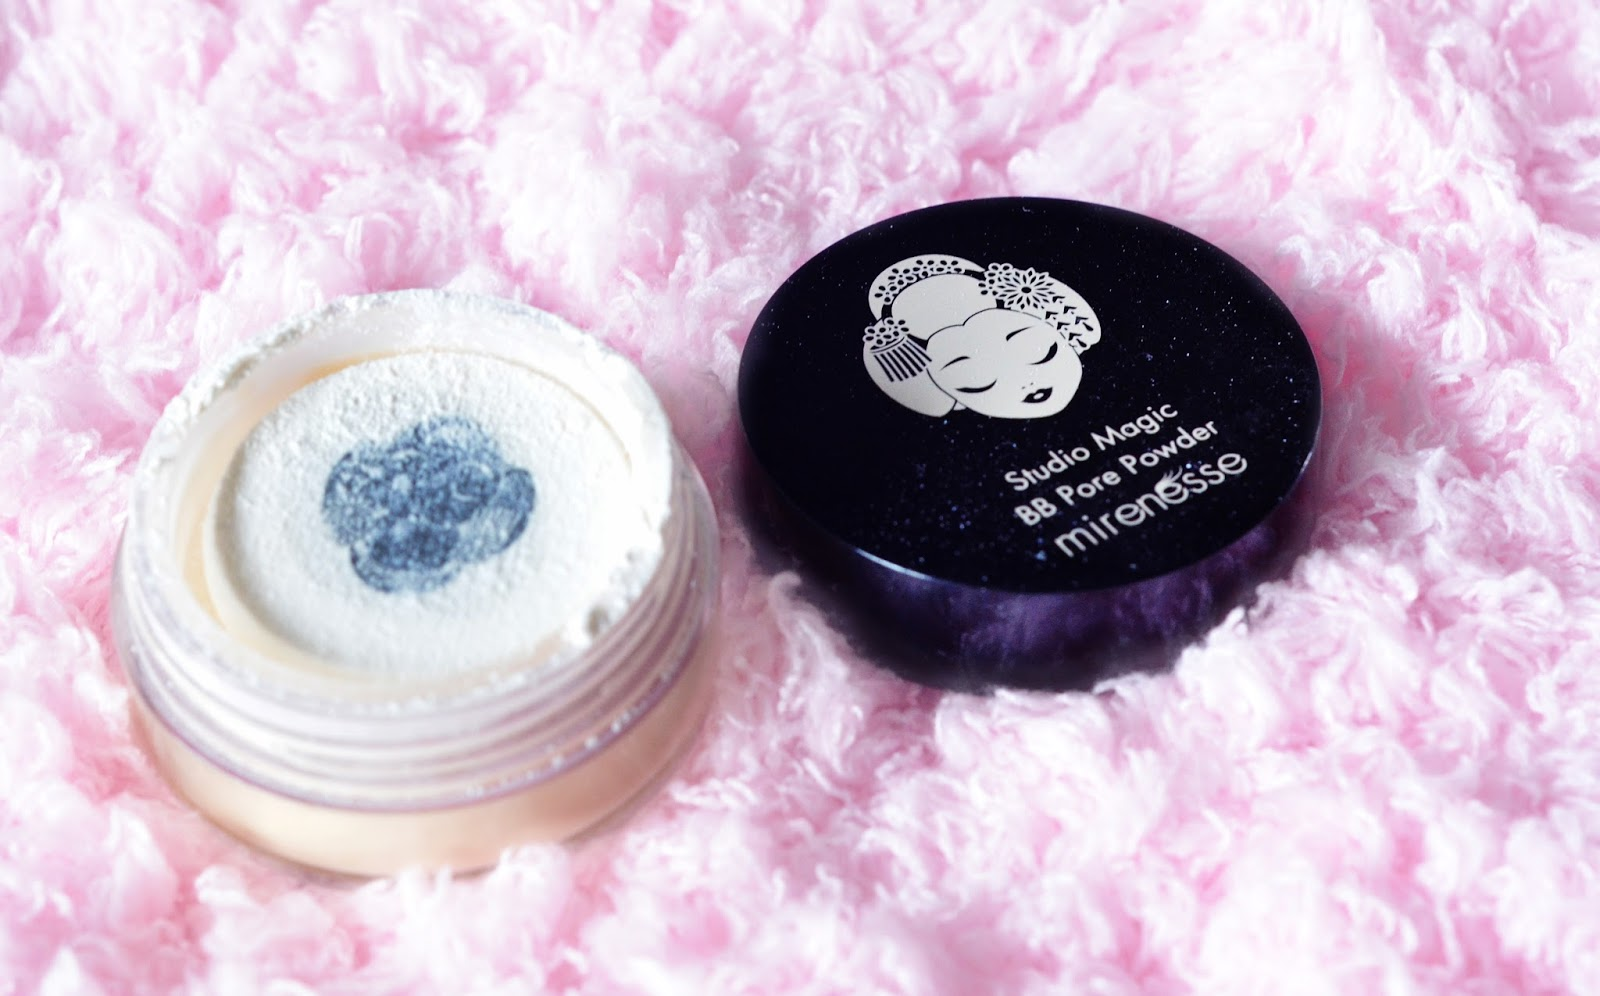 mirenesse studio magic bb pore powder